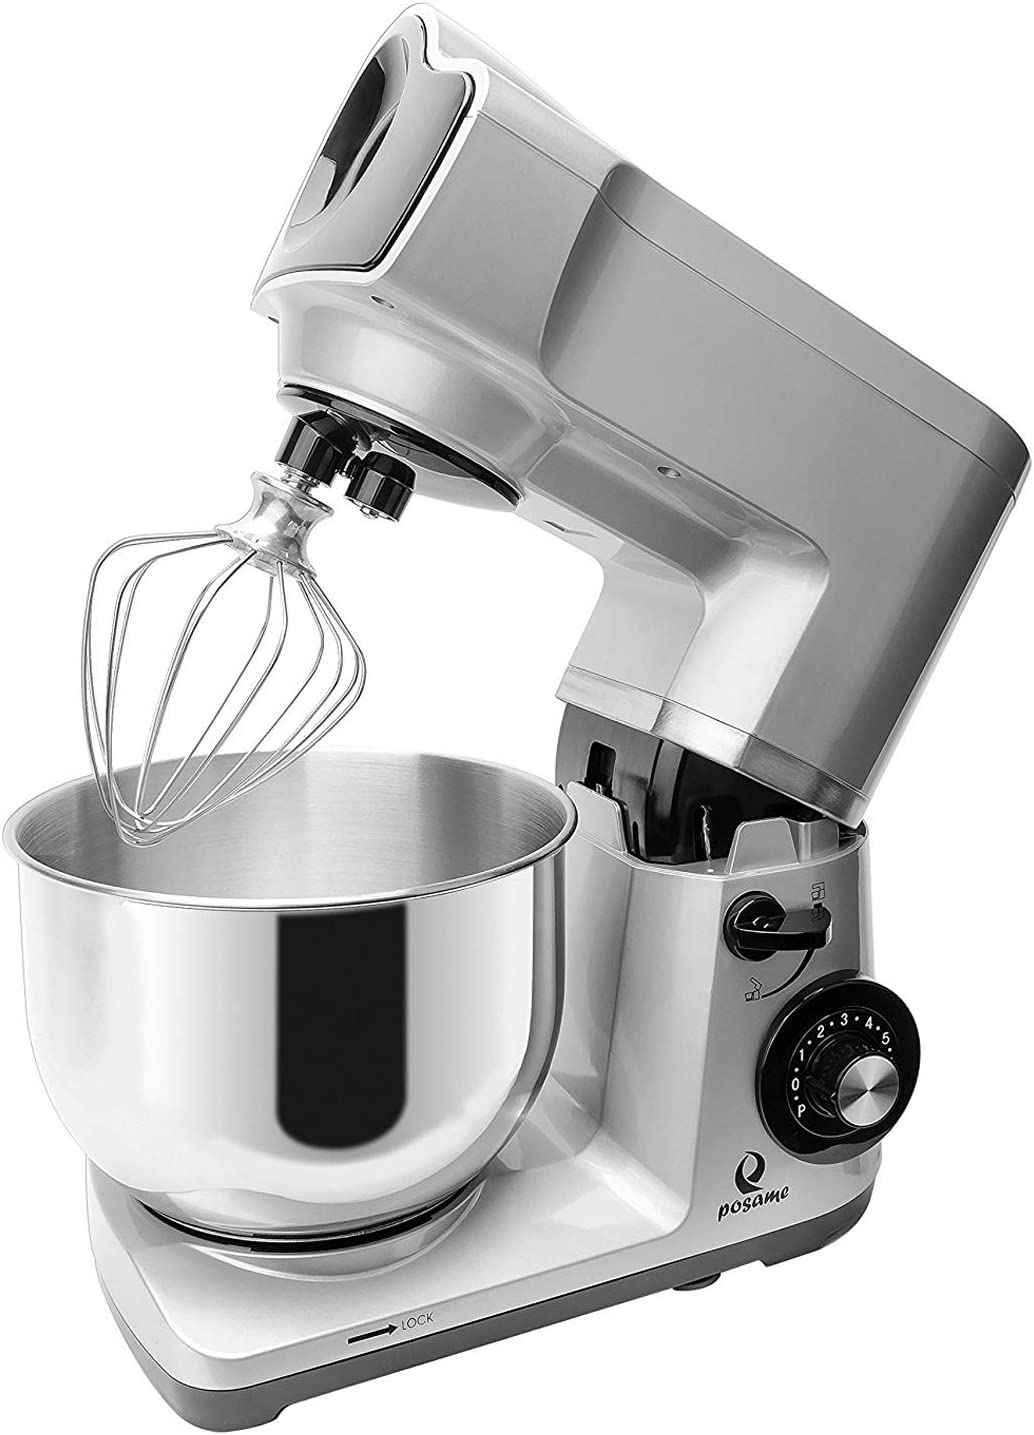 POSAME Stand Mixer 6 Speed Tilt-Head Stoving Varnish, 4.7 quart, 500W, Silver